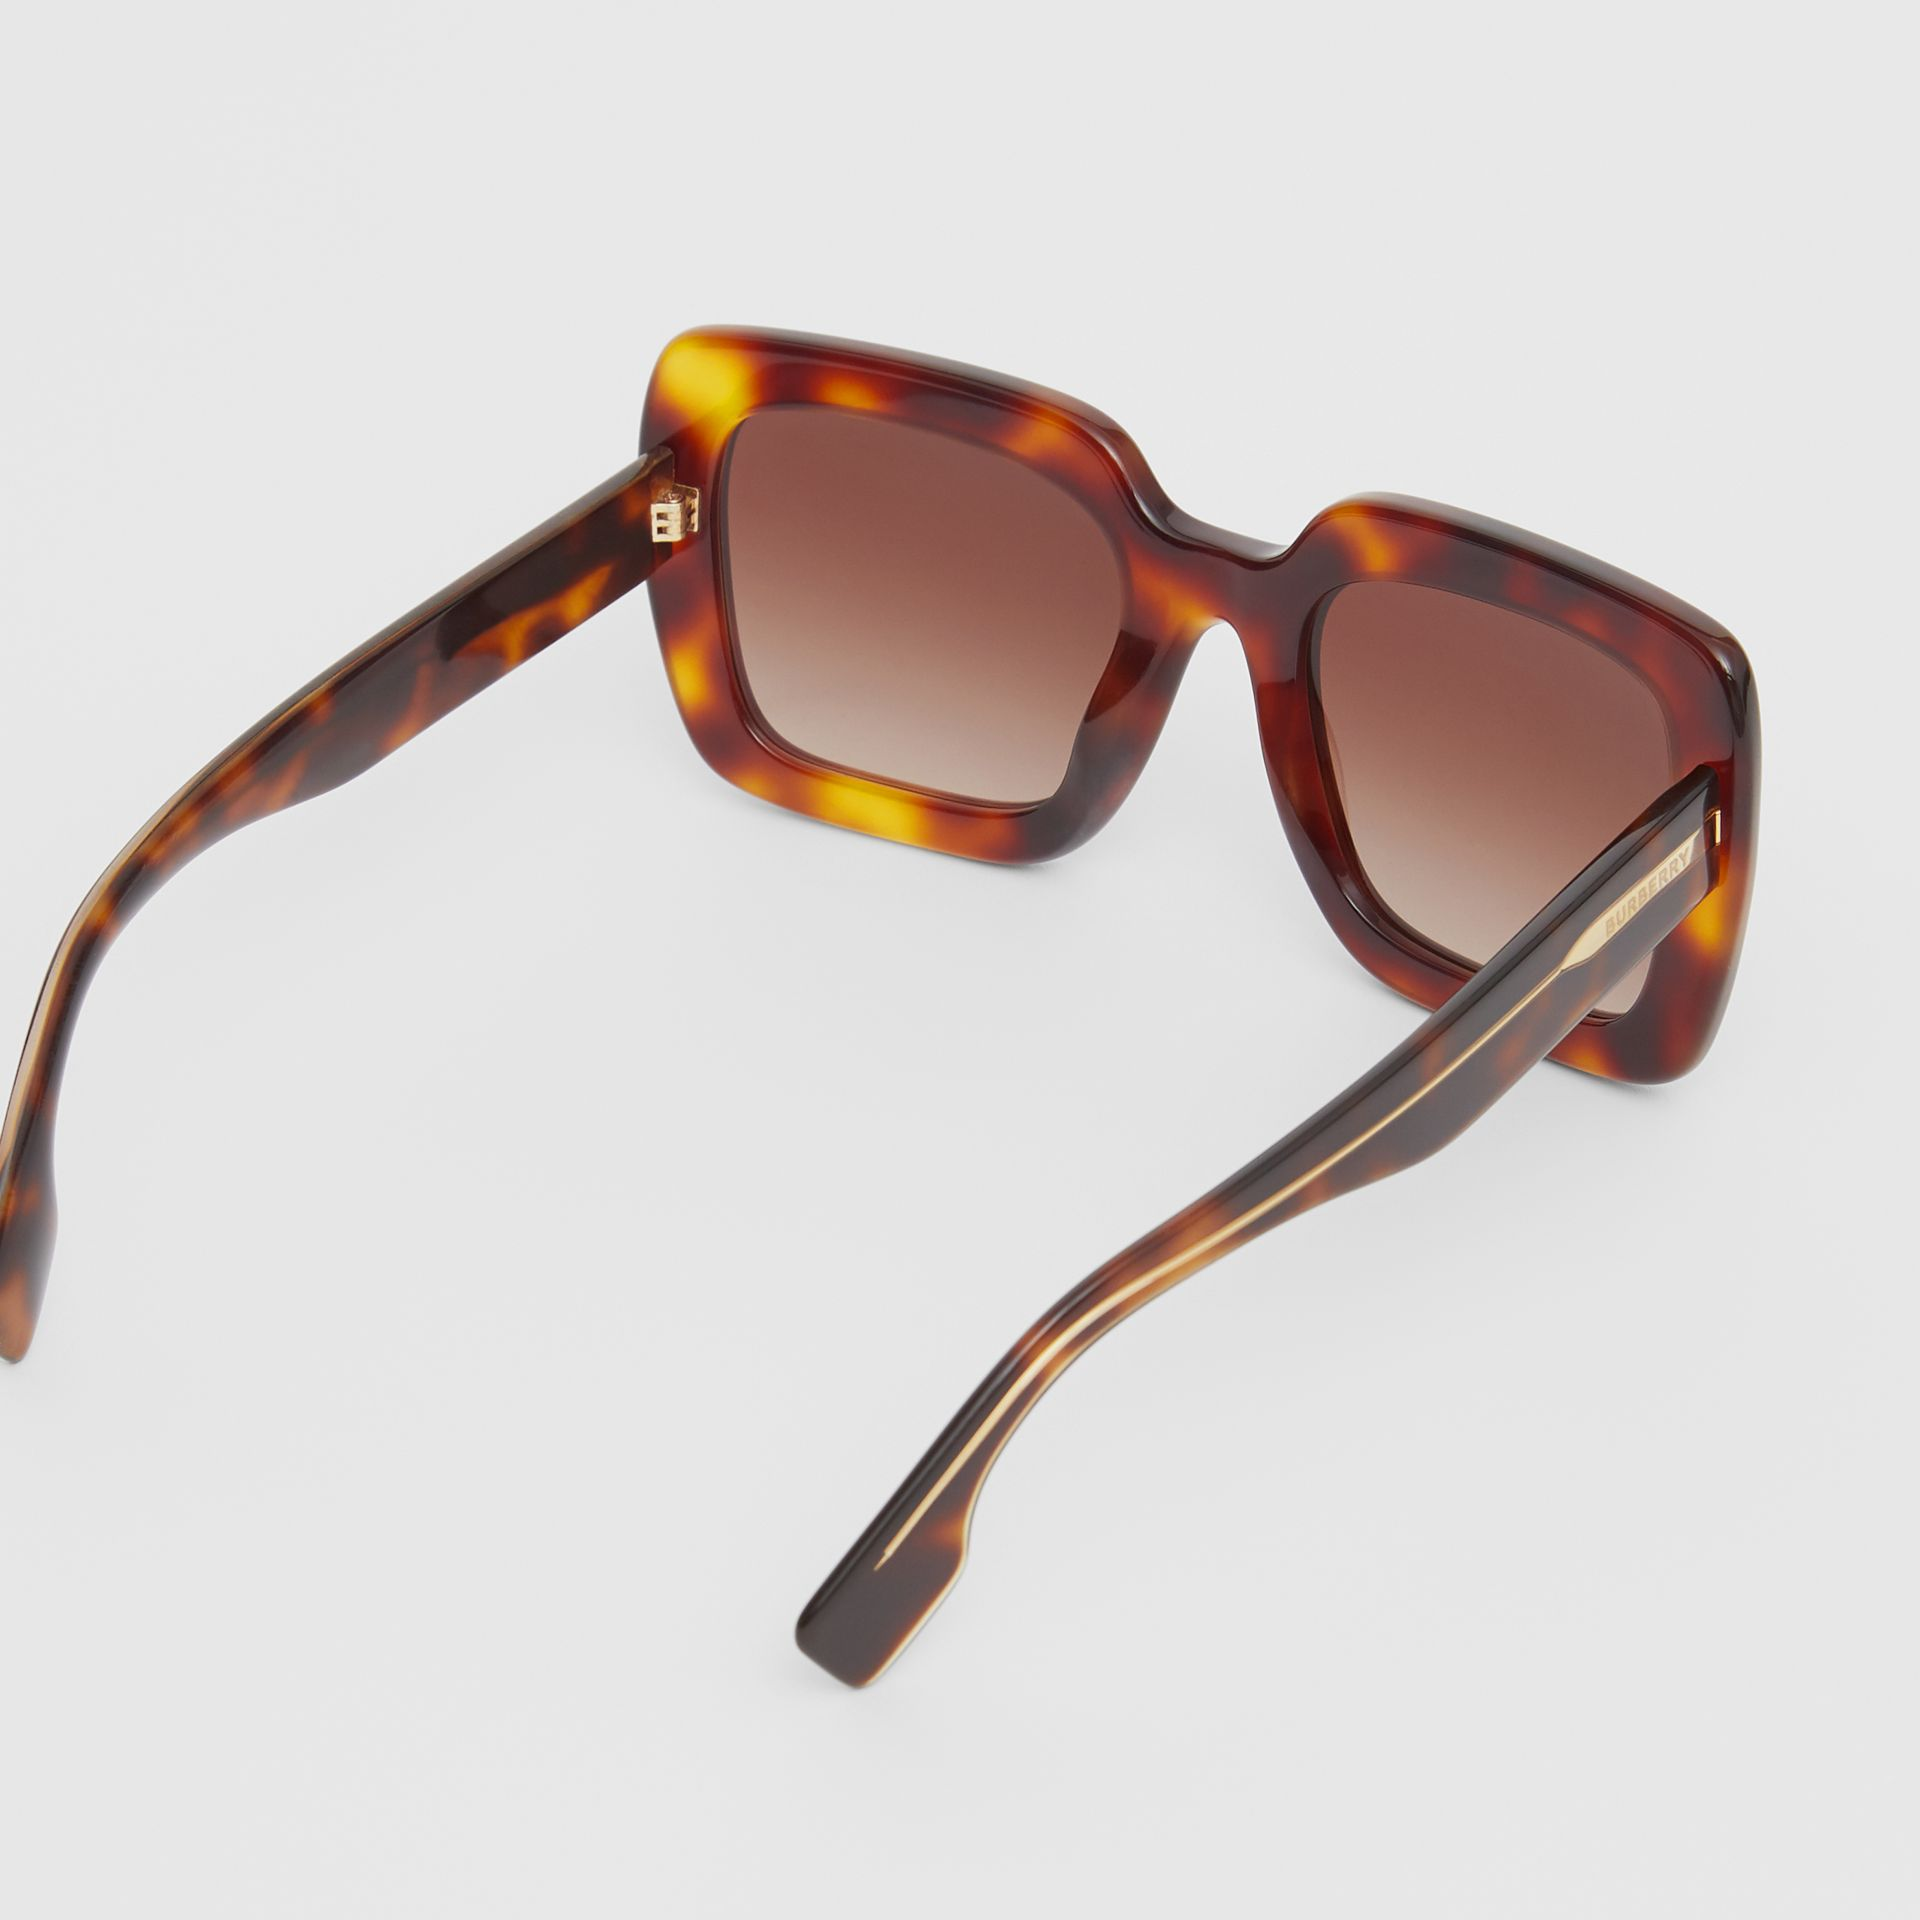 Oversized Square Frame Sunglasses in Tortoiseshell - Women | Burberry United Kingdom - gallery image 3